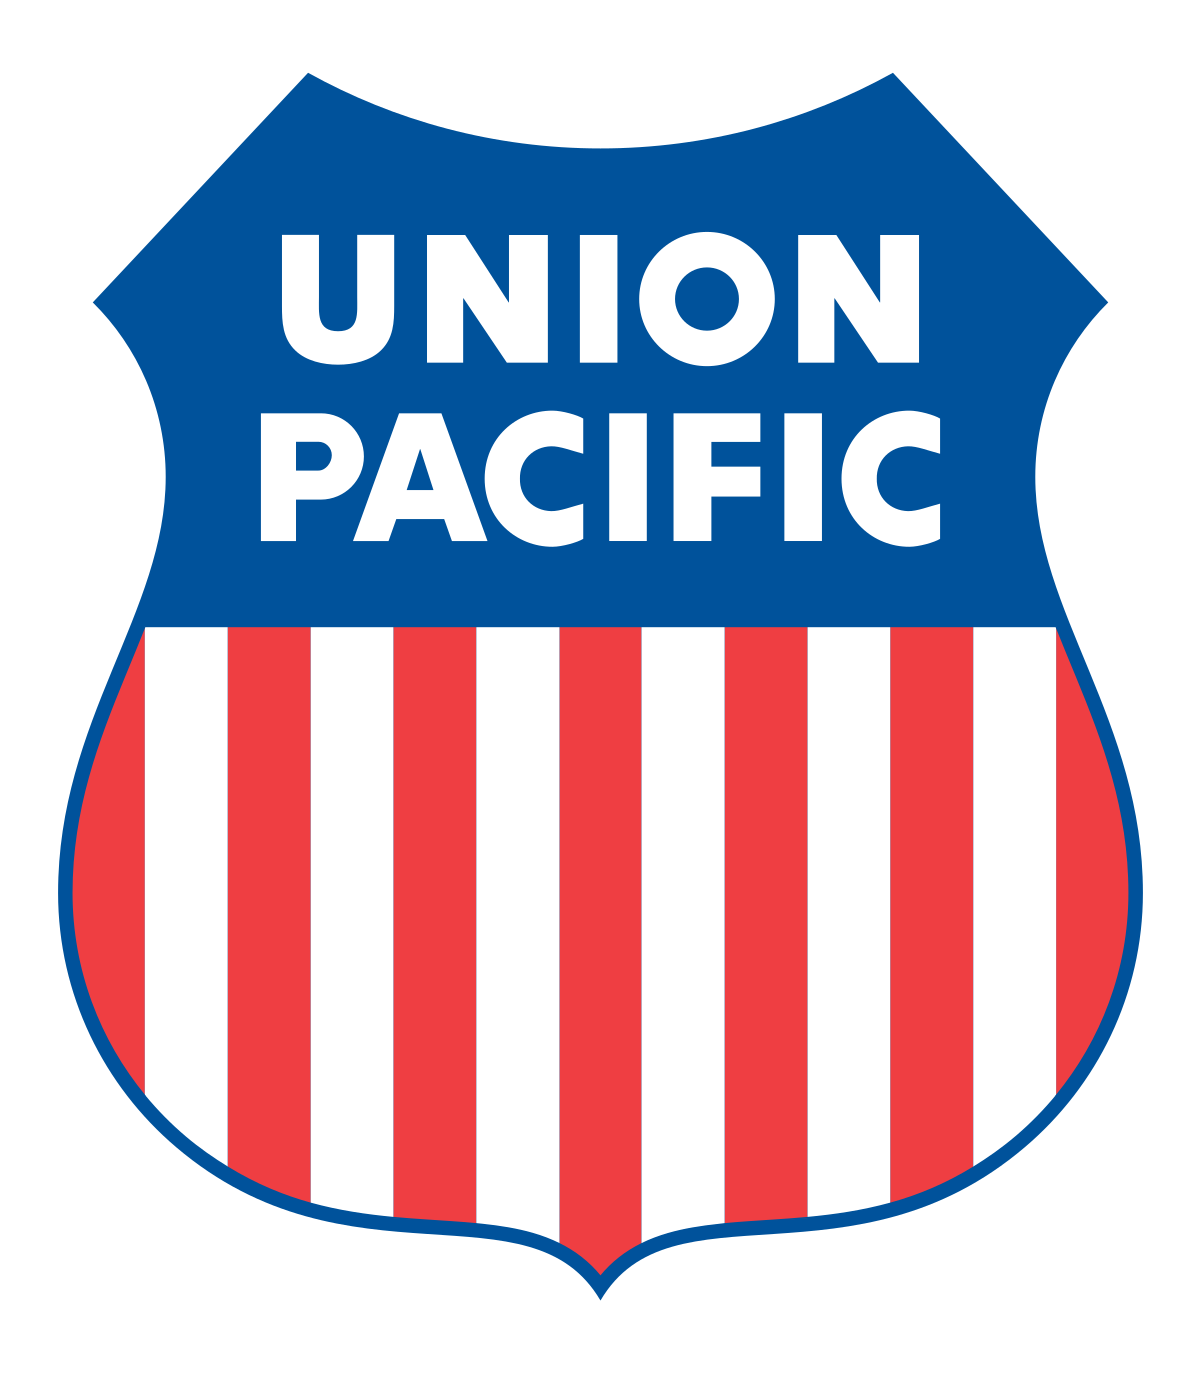 Union_pacific_railroad_logo.jpg